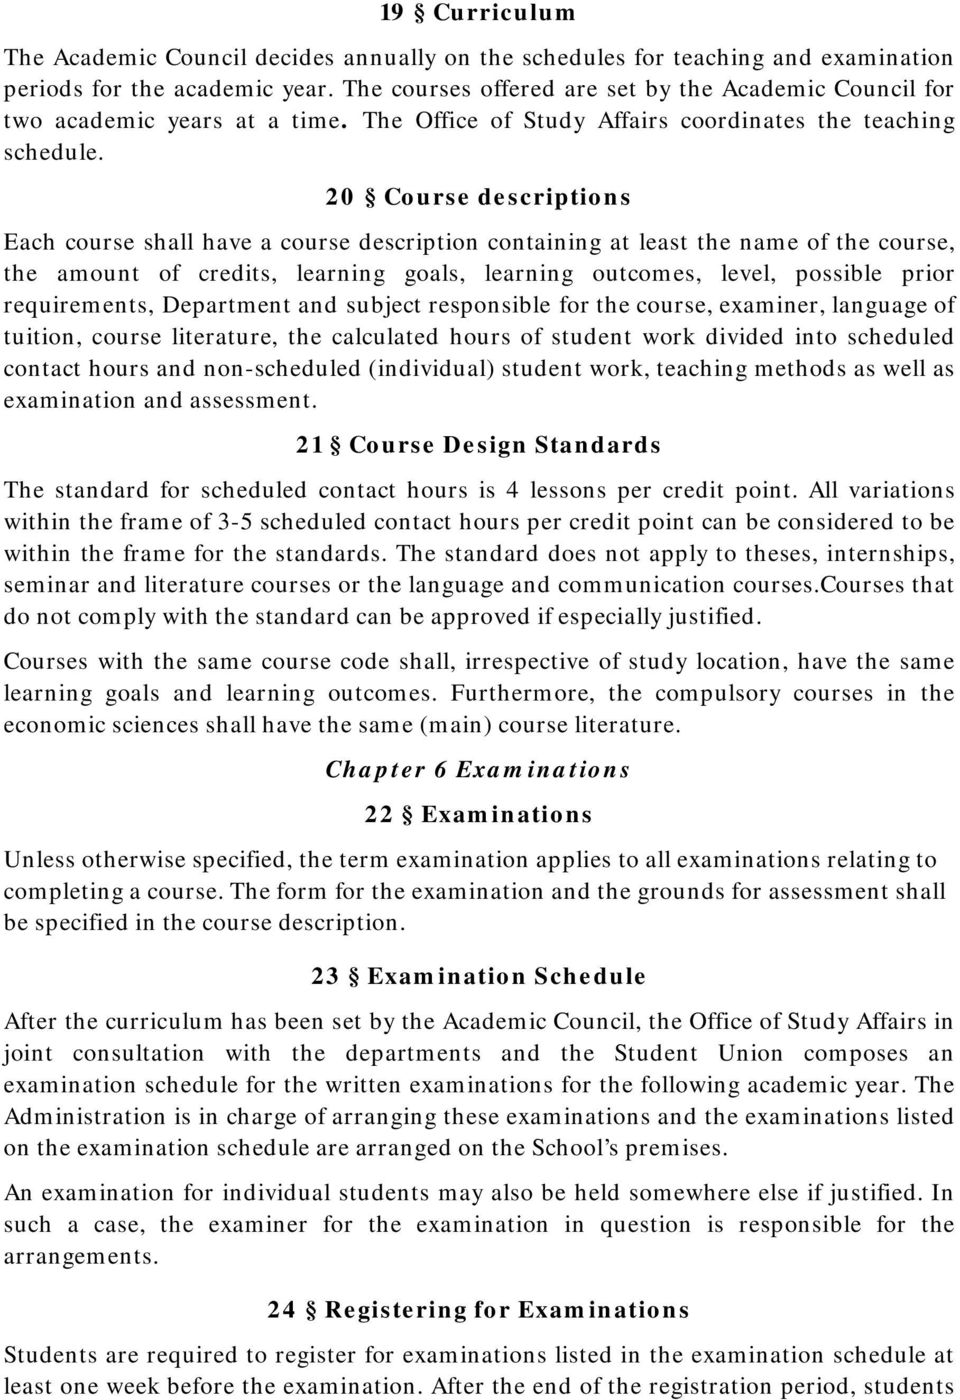 20 Course descriptions Each course shall have a course description containing at least the name of the course, the amount of credits, learning goals, learning outcomes, level, possible prior